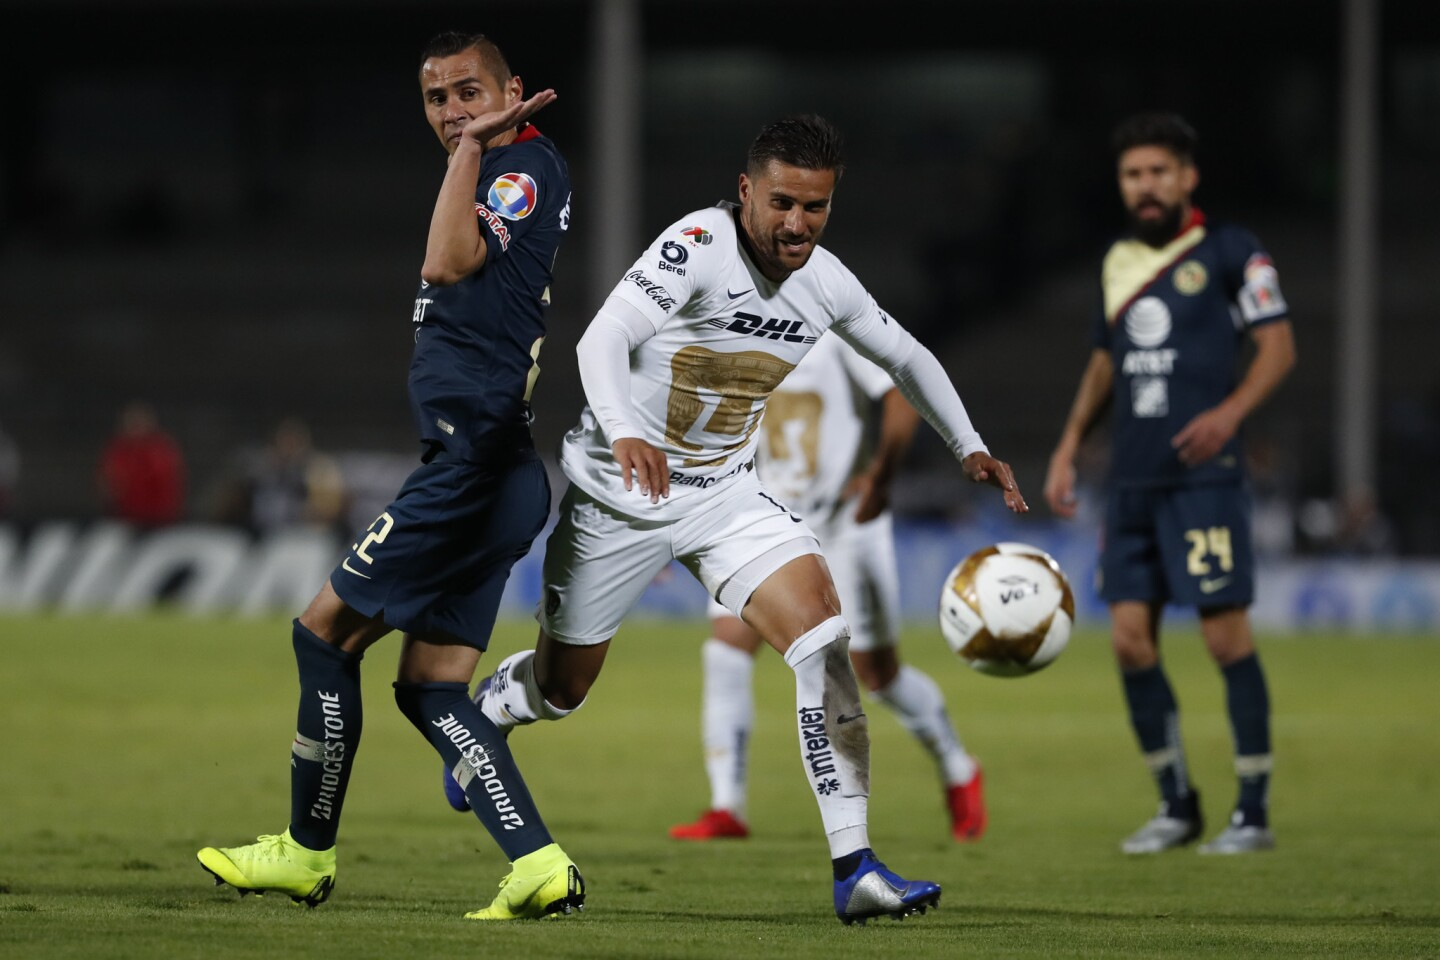 Pumas' Andres Iniestra, center, goes for the ball past America's Paul Aguilar during a Mexico soccer league first leg semifinals match in Mexico City, Thursday, Dec. 6, 2018. (AP Photo/Moises Castillo)